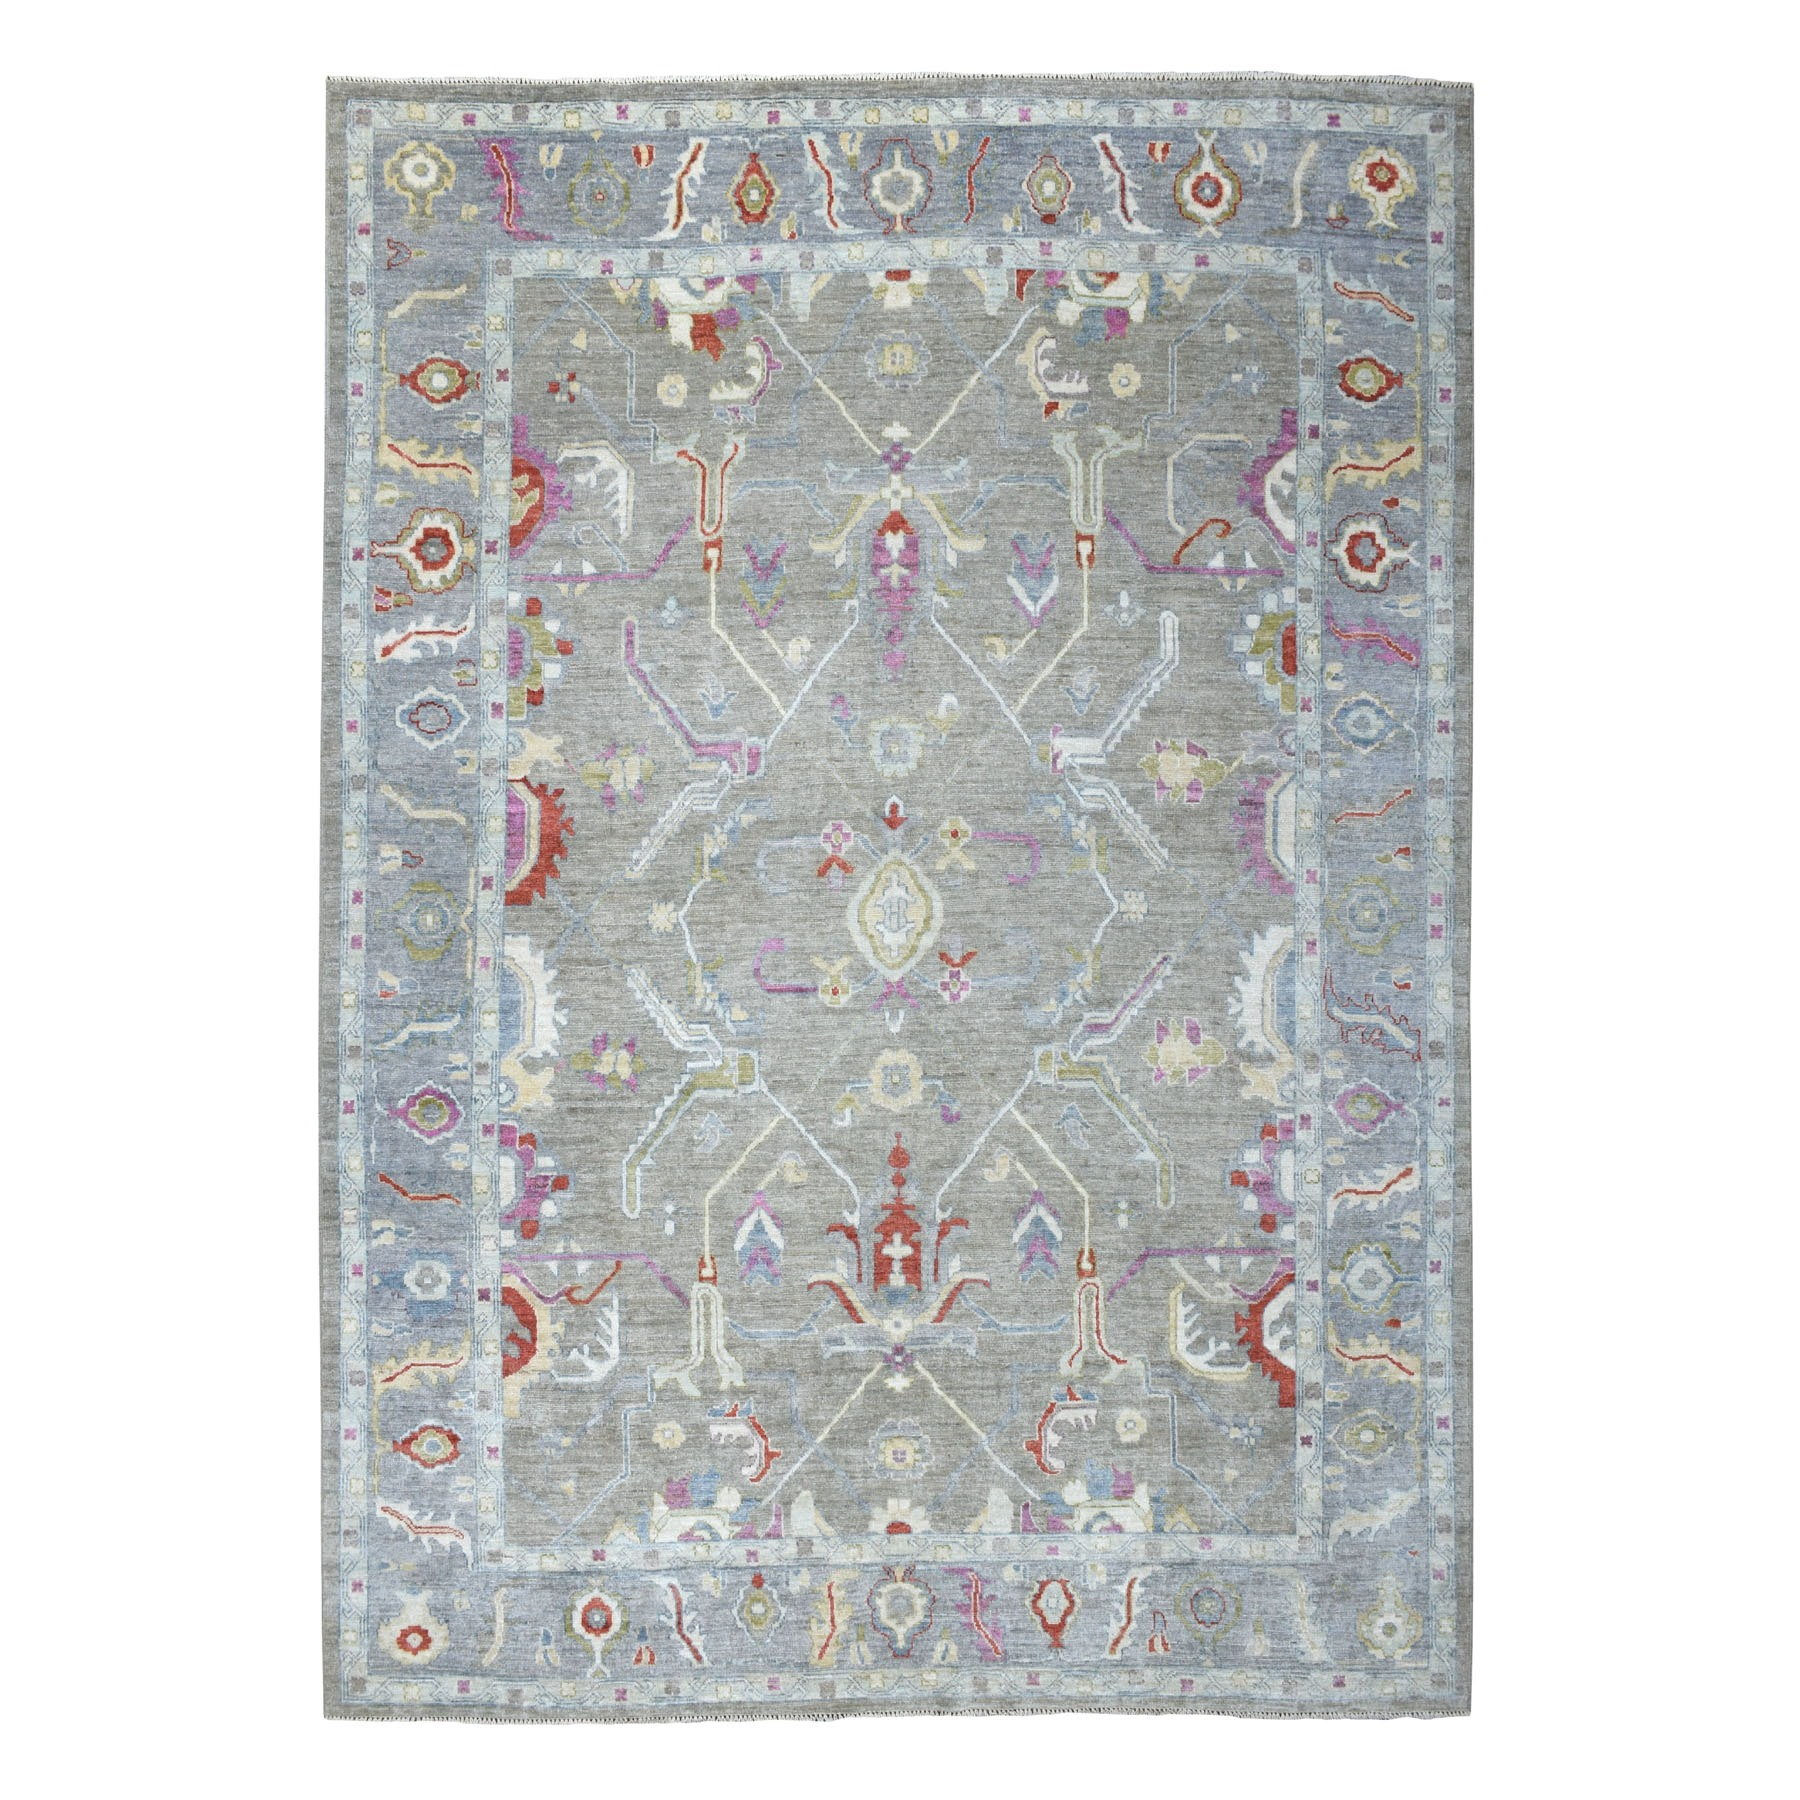 9'X12' Gray Angora Oushak Soft Velvety Wool Hand Knotted Oriental Rug moaec6eb